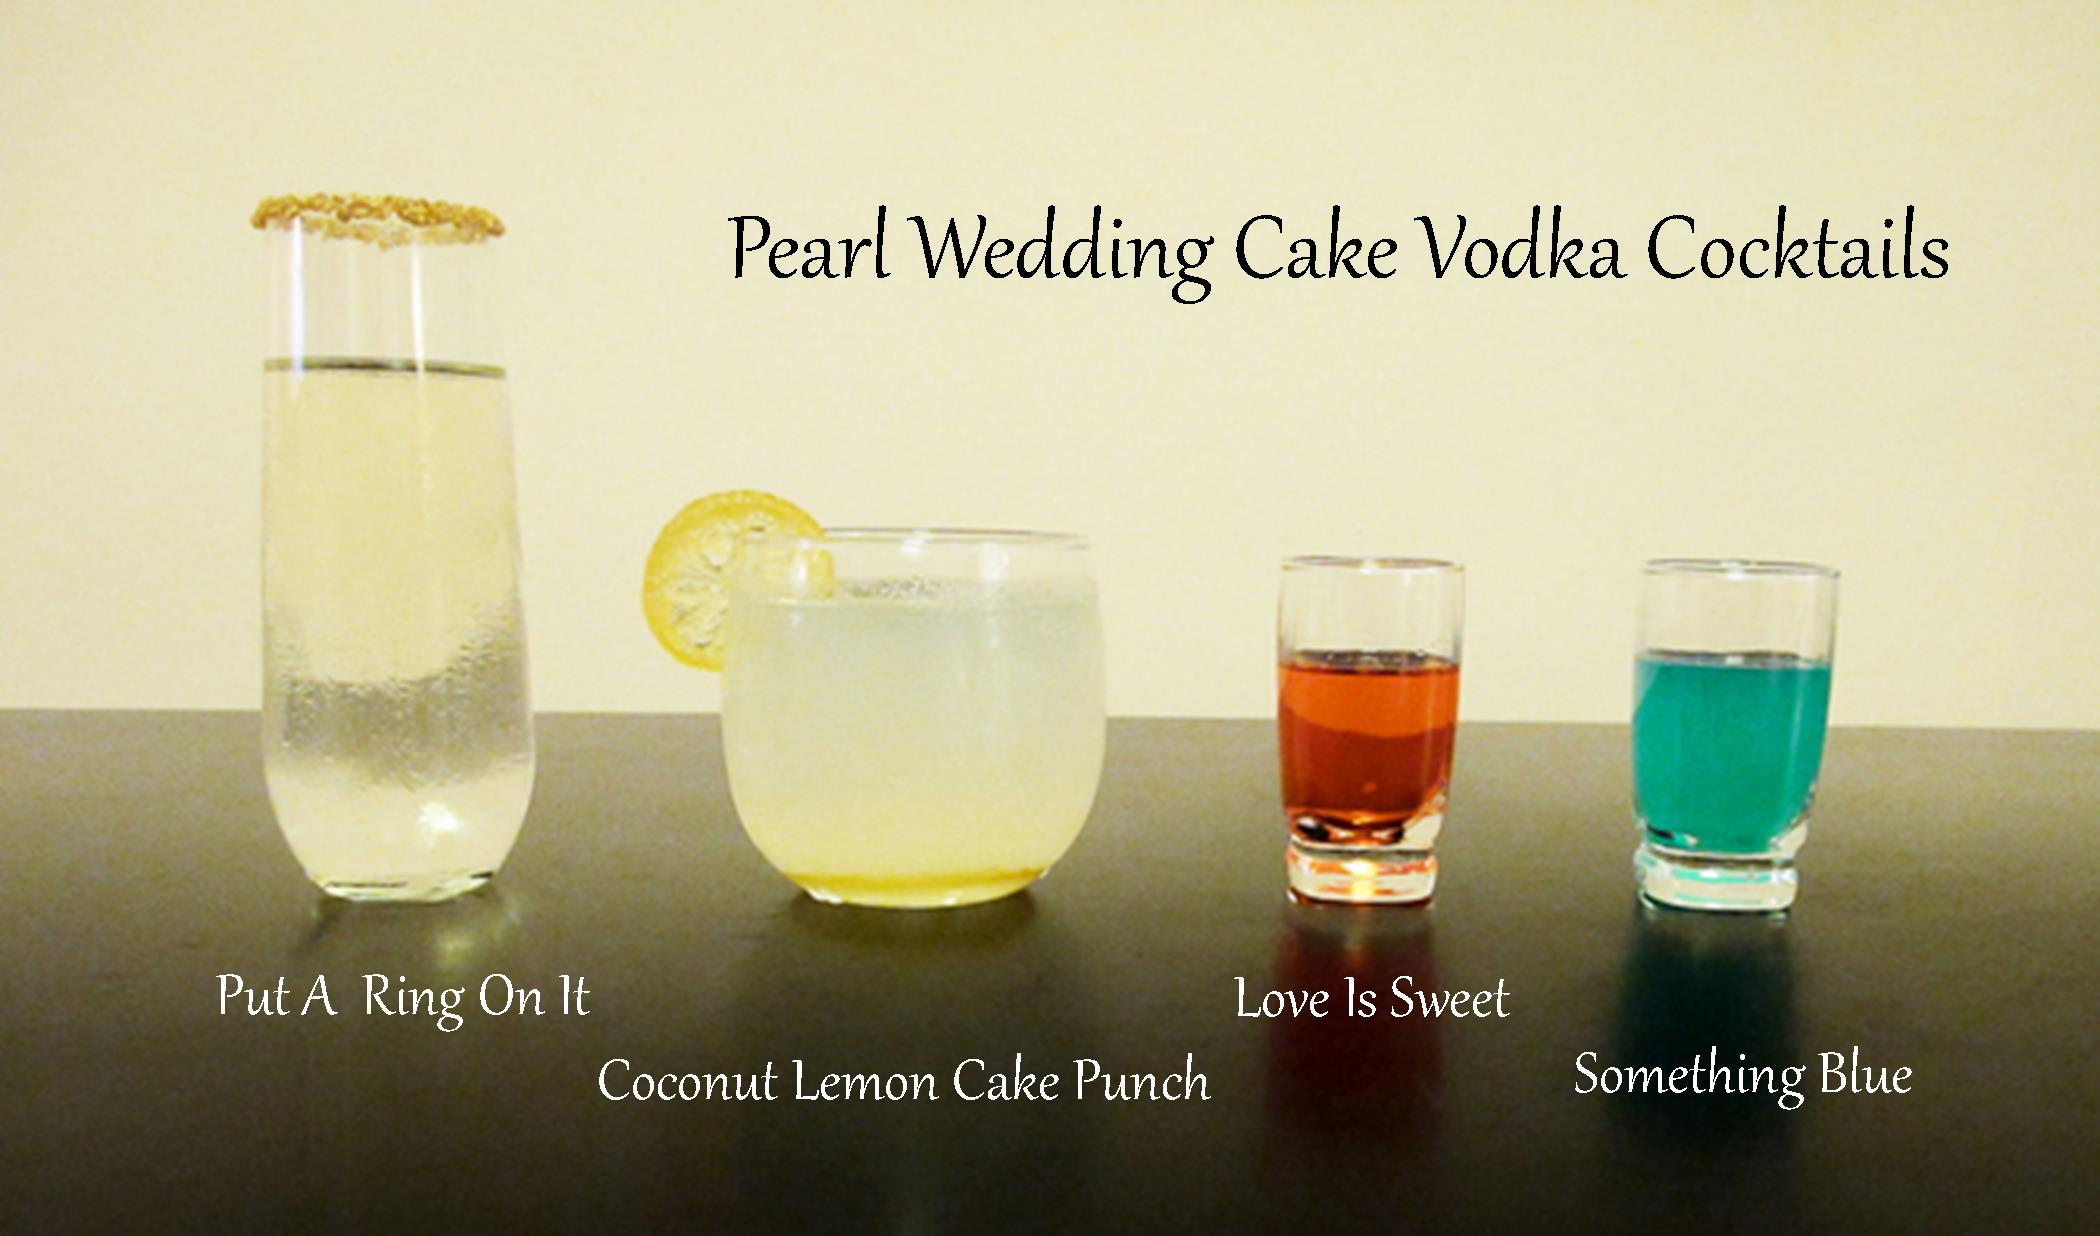 How Much Is Pearl Wedding Cake Vodka